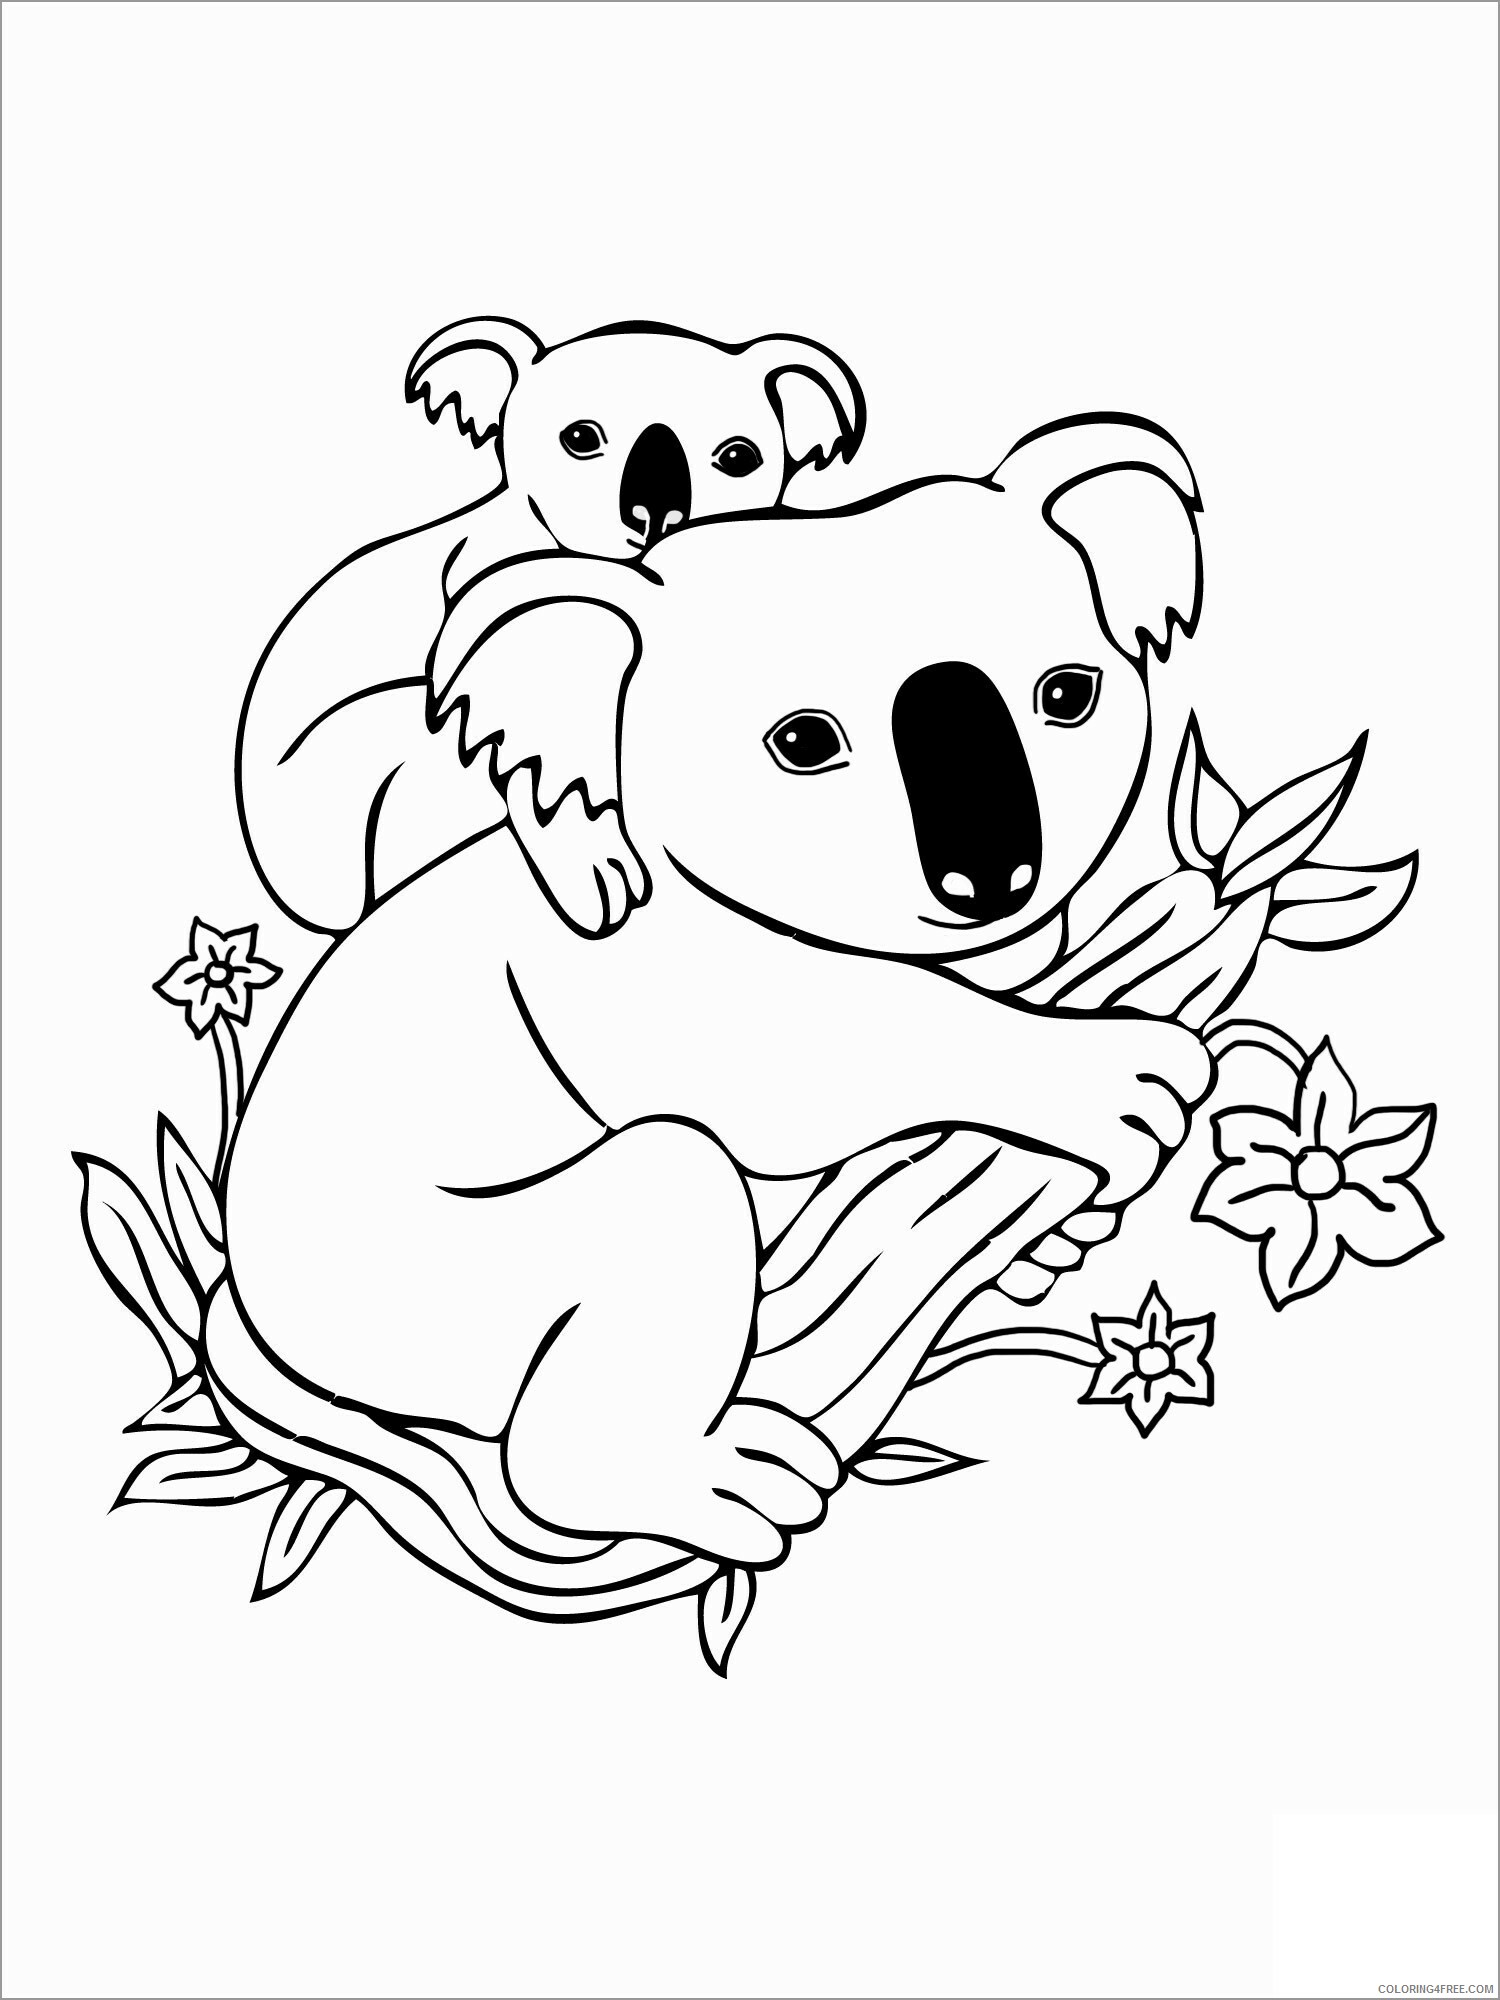 Koala Coloring Pages Animal Printable Sheets koala moms and baby 2021 3057 Coloring4free